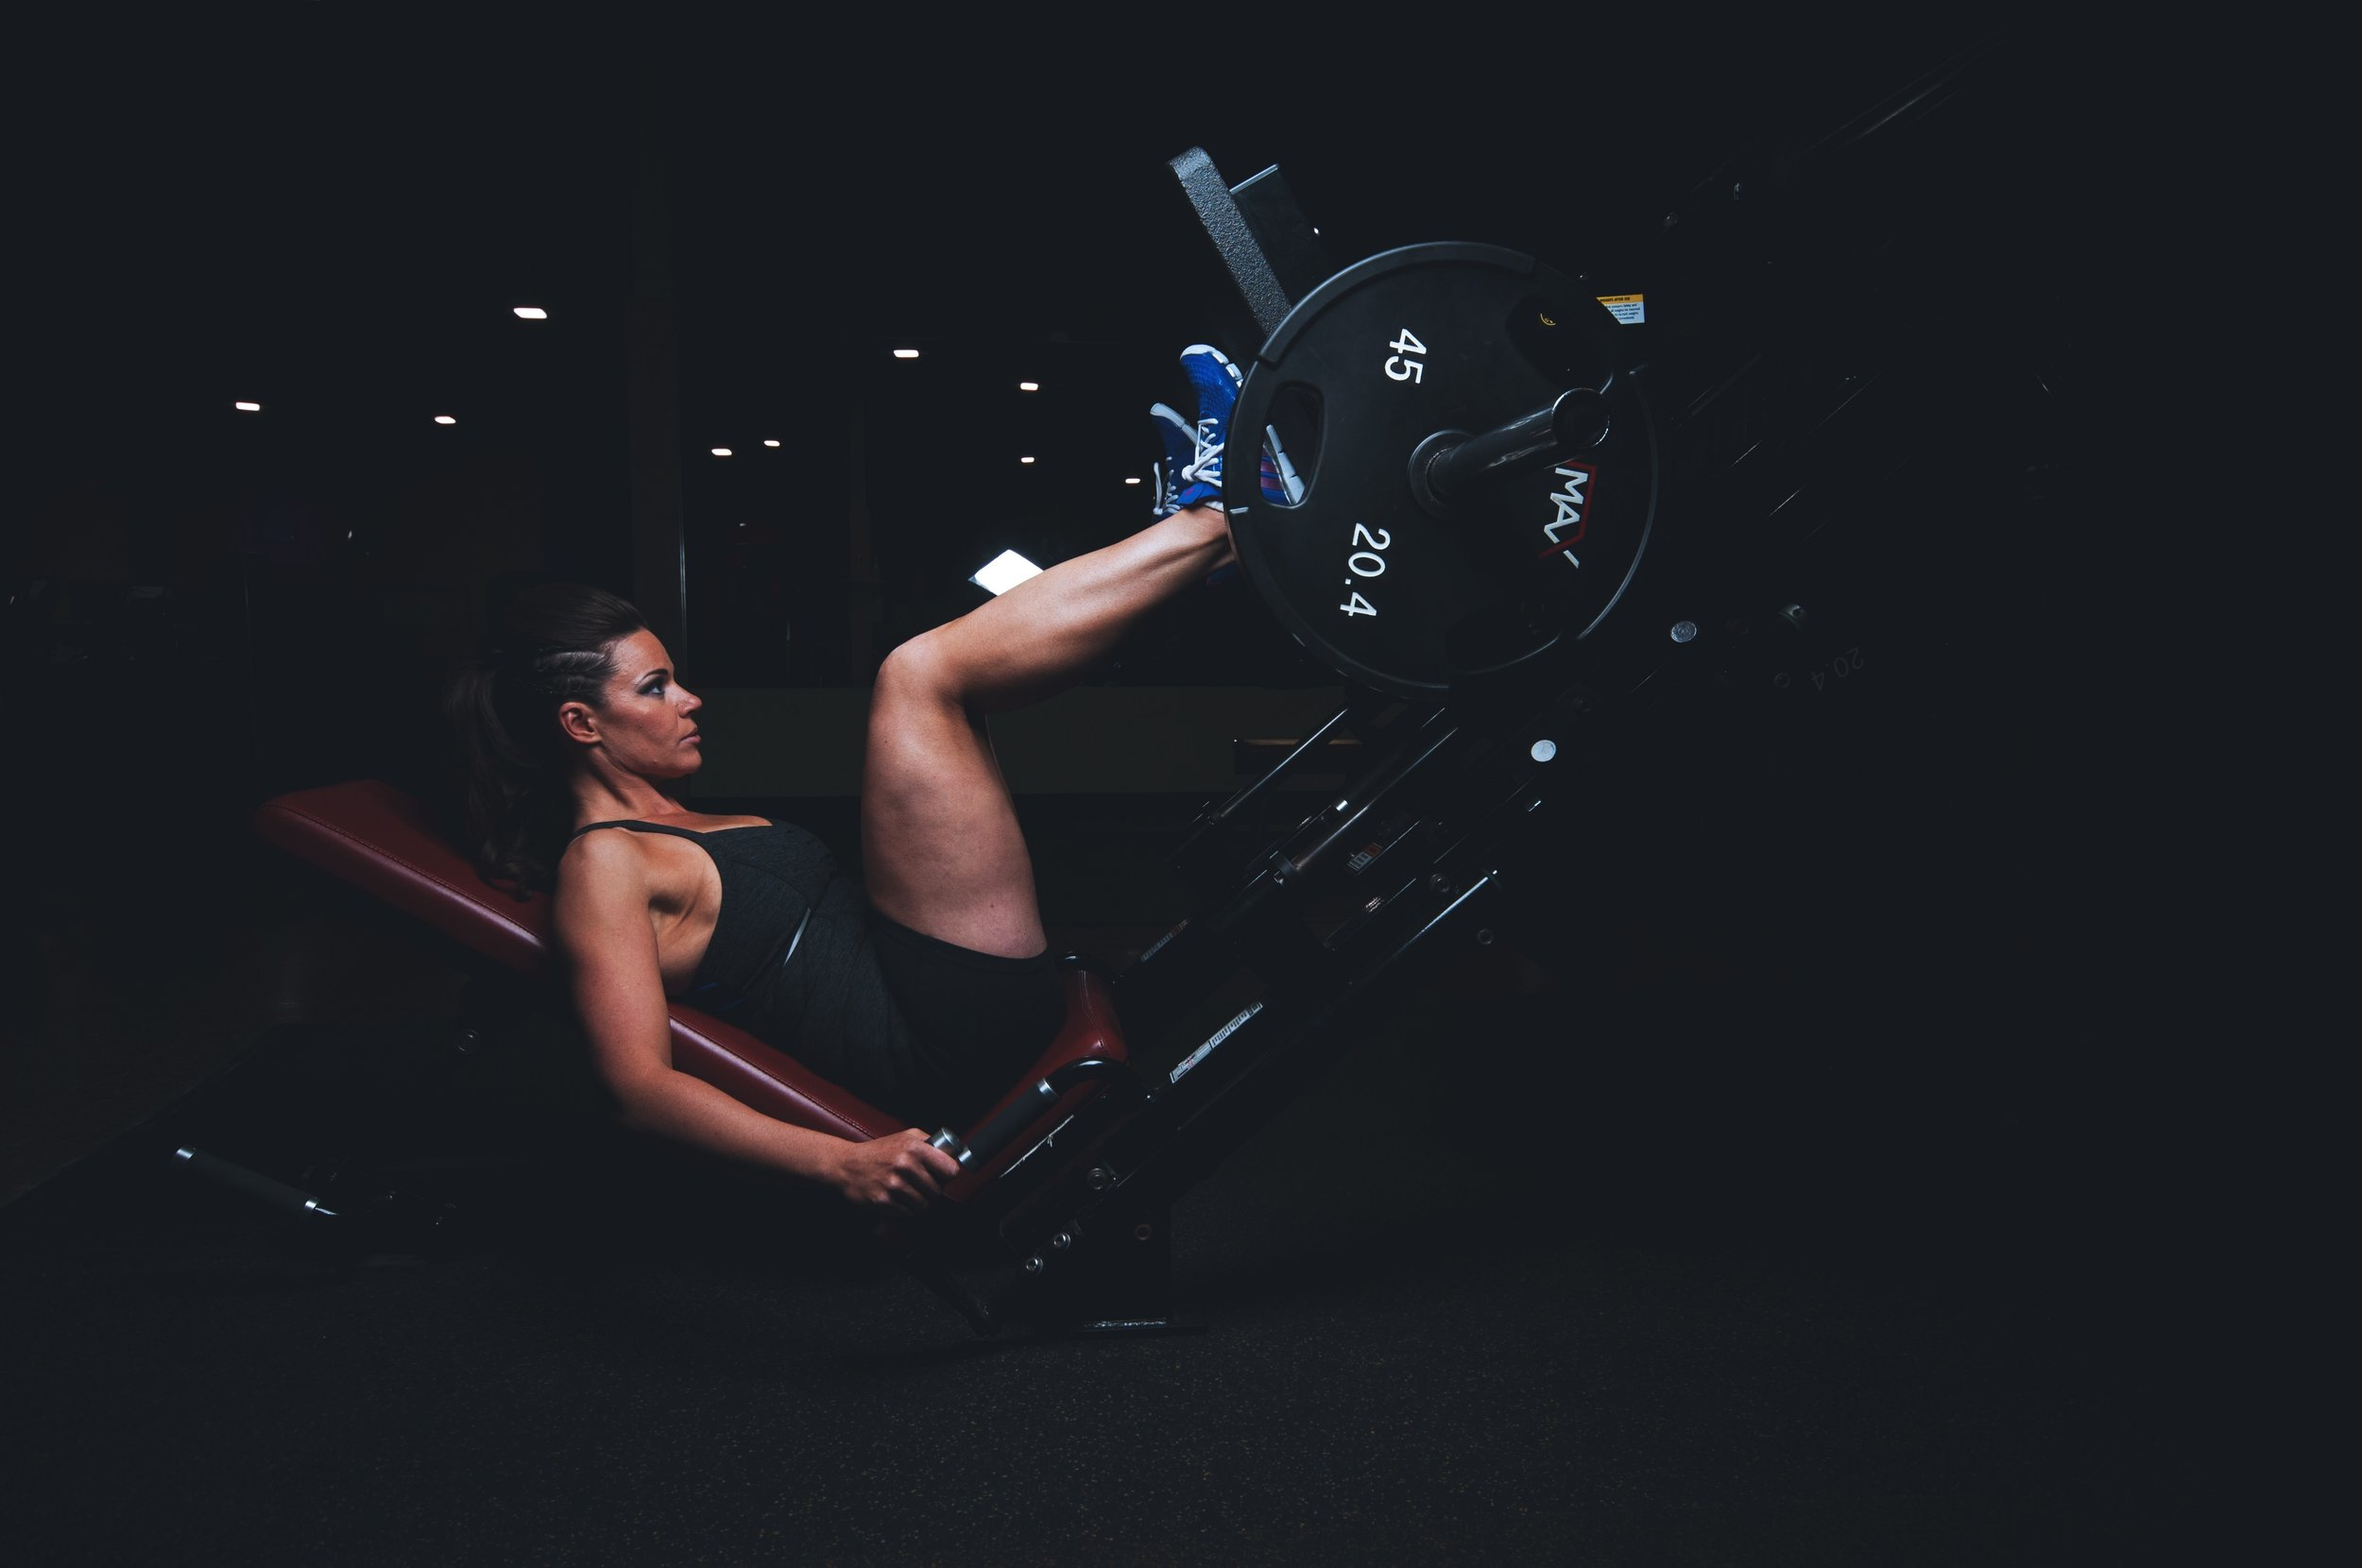 Even if you're not familiar with the leg press, consider it! Its a great way to target glutes, hamstrings, and quads in one fell swoop.